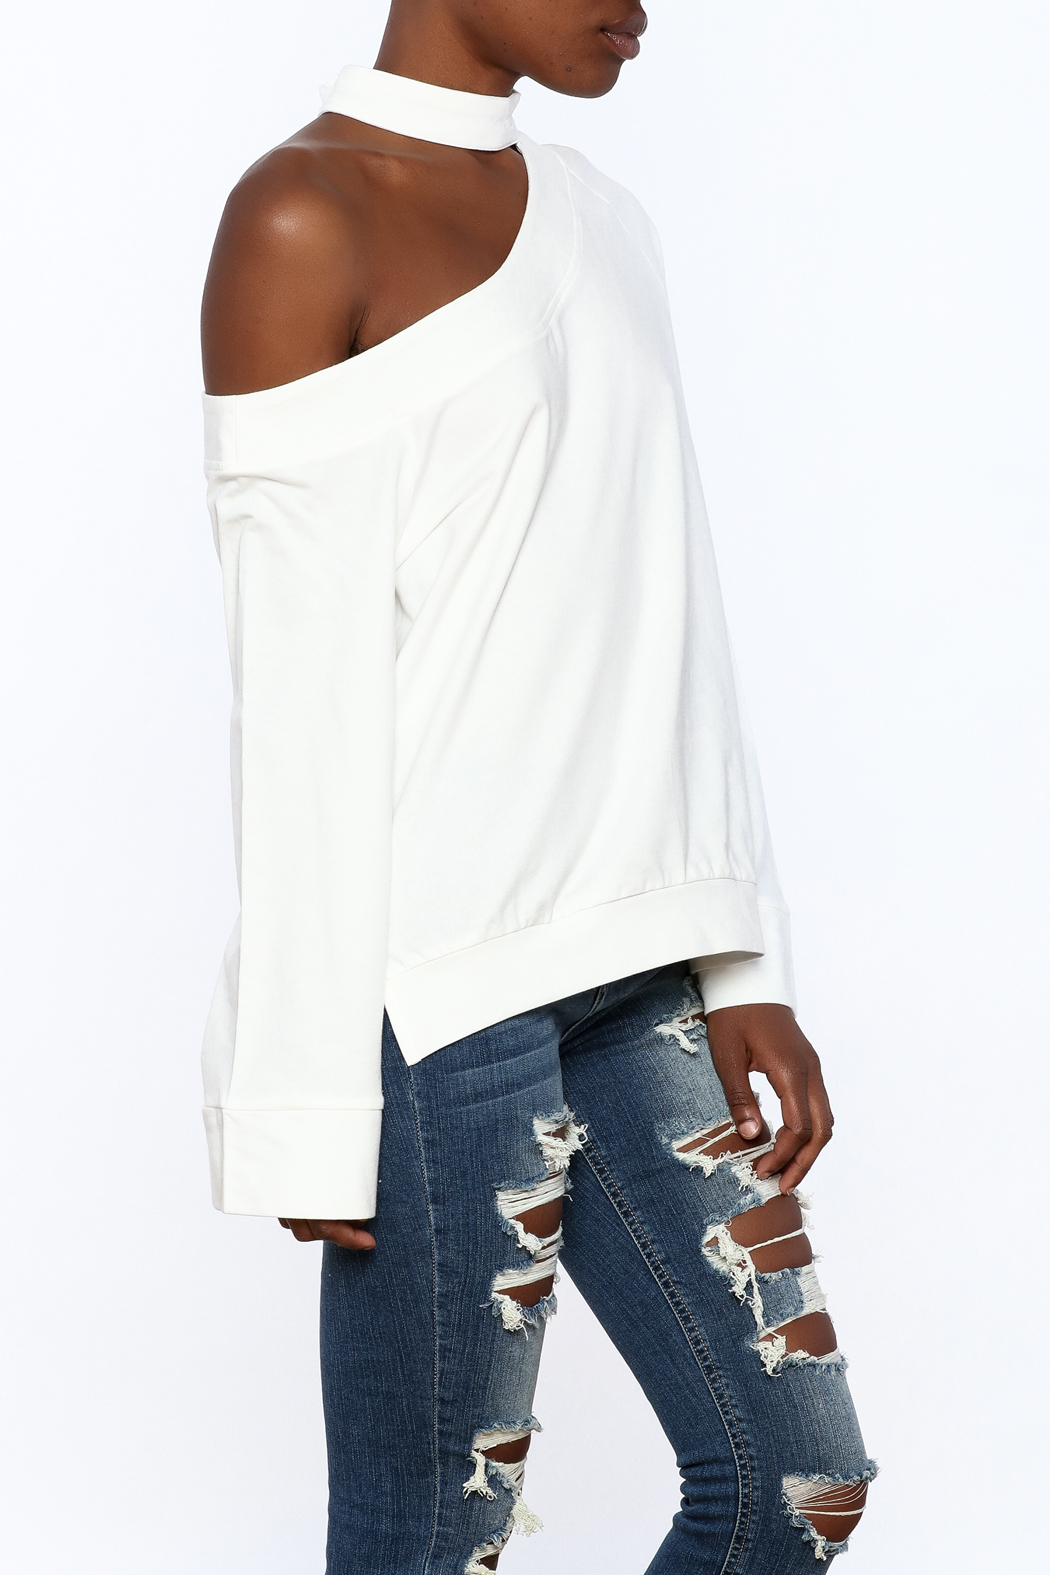 essue White One-Shoulder Top - Main Image